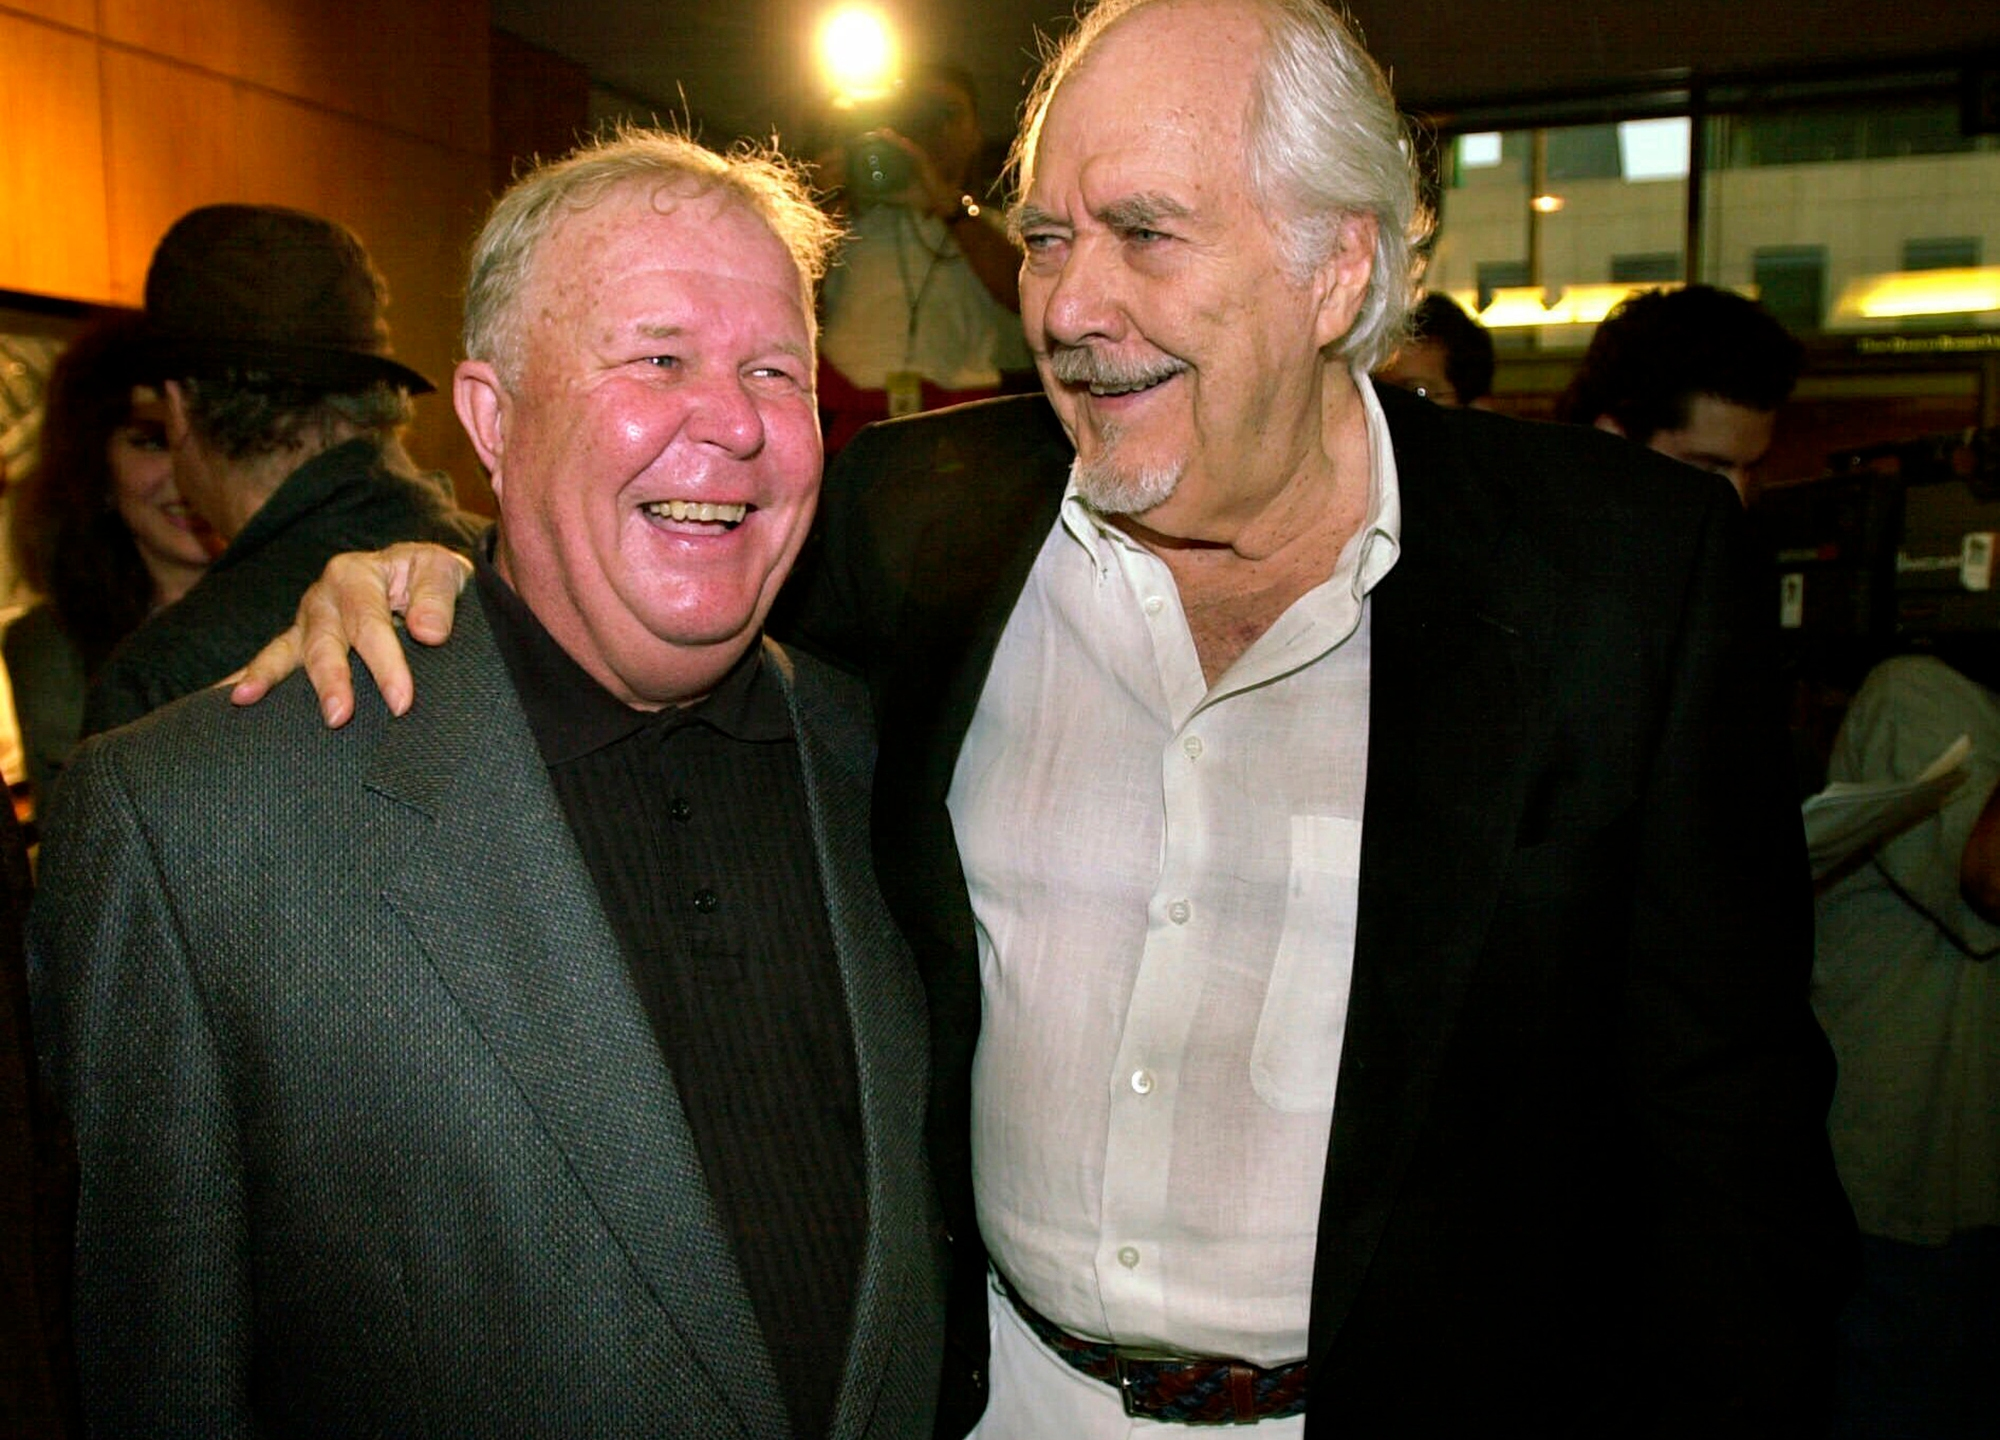 """In this Thursday, June 22, 2000, file photo, director-producer Robert Altman, right, laughs with actor Ned Beatty prior to the 25th anniversary screening of """"Nashville,"""" at the Academy of Motion Picture Arts and Sciences in Beverly Hills, Calif. Beatty portrayed Delbert Reese in Altman's film. Beatty, the indelible character actor whose first film role, as a genial vacationer brutally raped by a backwoodsman in 1972′s """"Deliverance,"""" launched him on a long, prolific and accomplished career, died Sunday, June 13, 2021. He was 83. (AP Photo/Michael Caulfield, File)"""